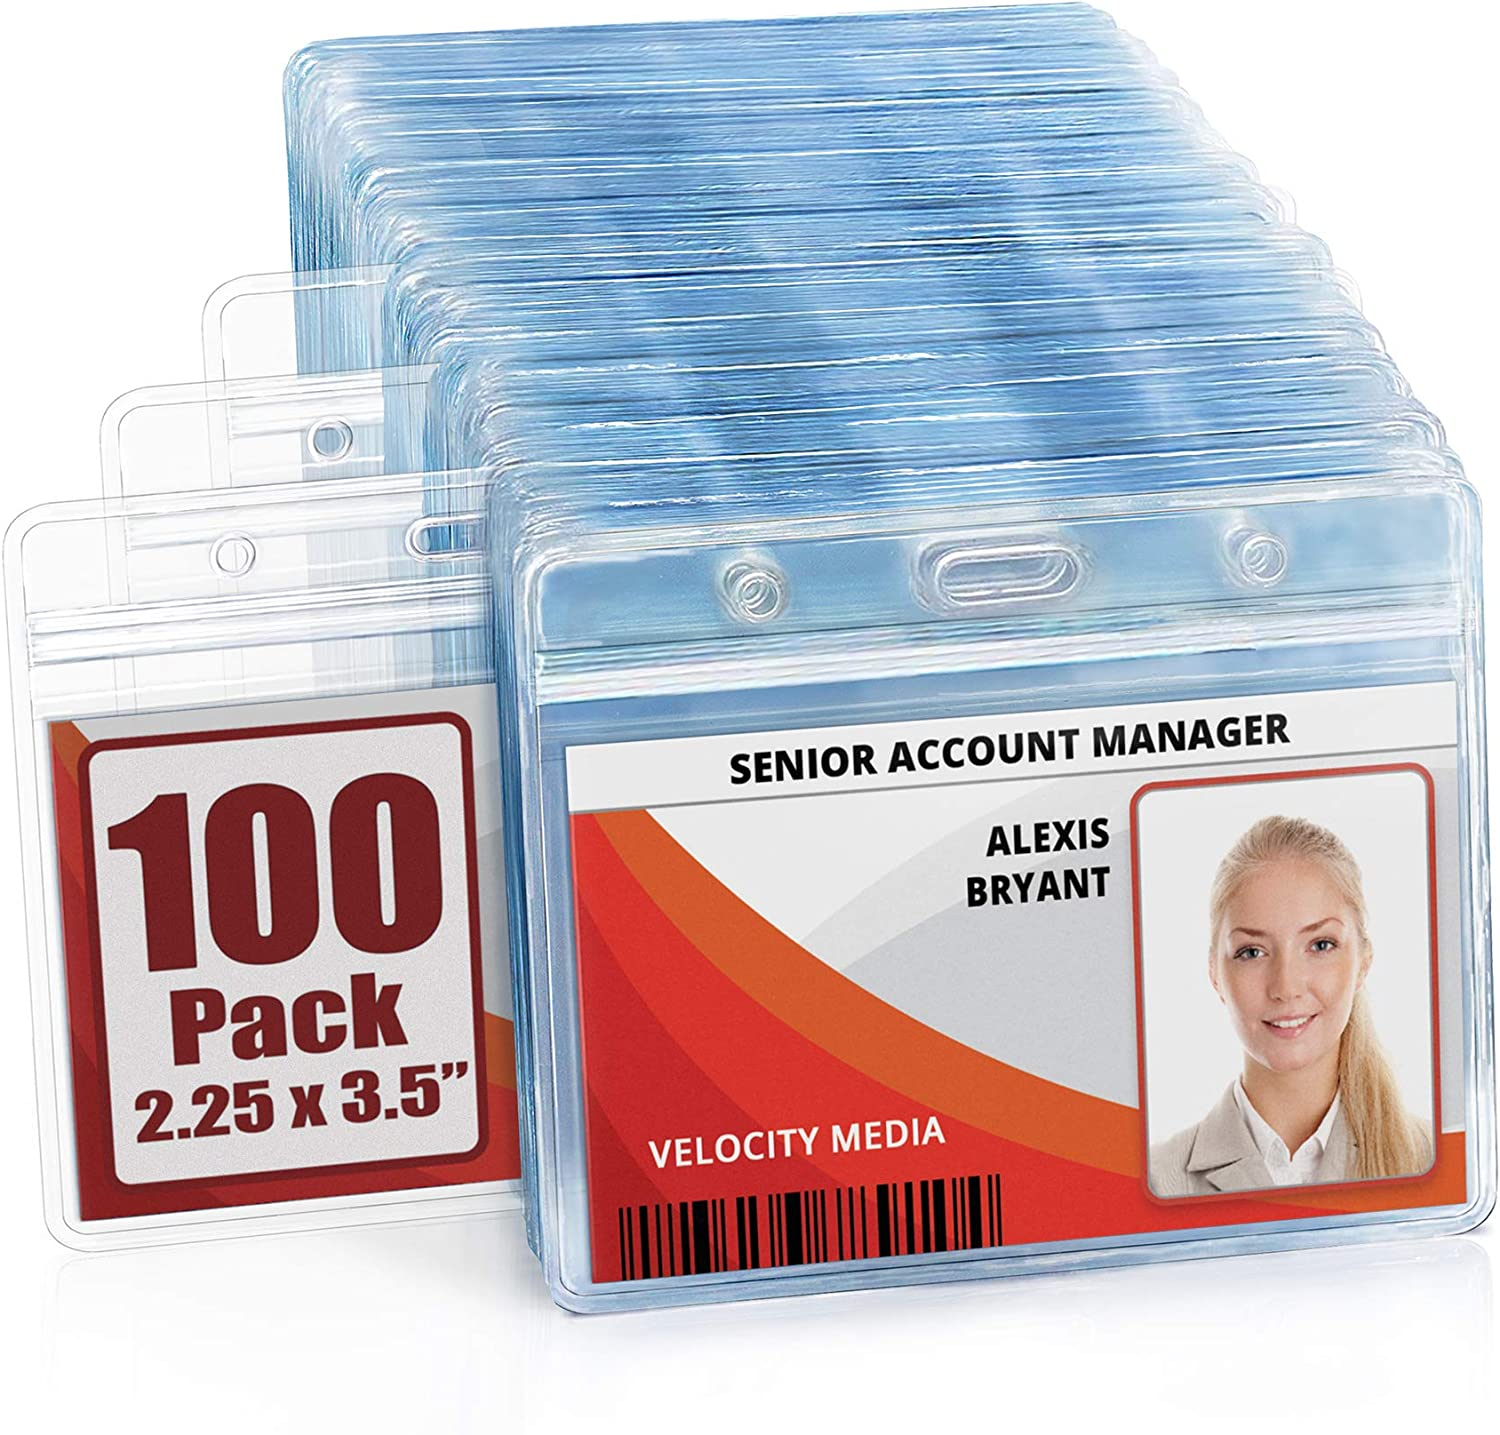 MIFFLIN Horizontal ID Name Badge Holder (Clear, 2.25x3.5 Inches, 100 Pack), Waterproof and Resealable Plastic Card Holders